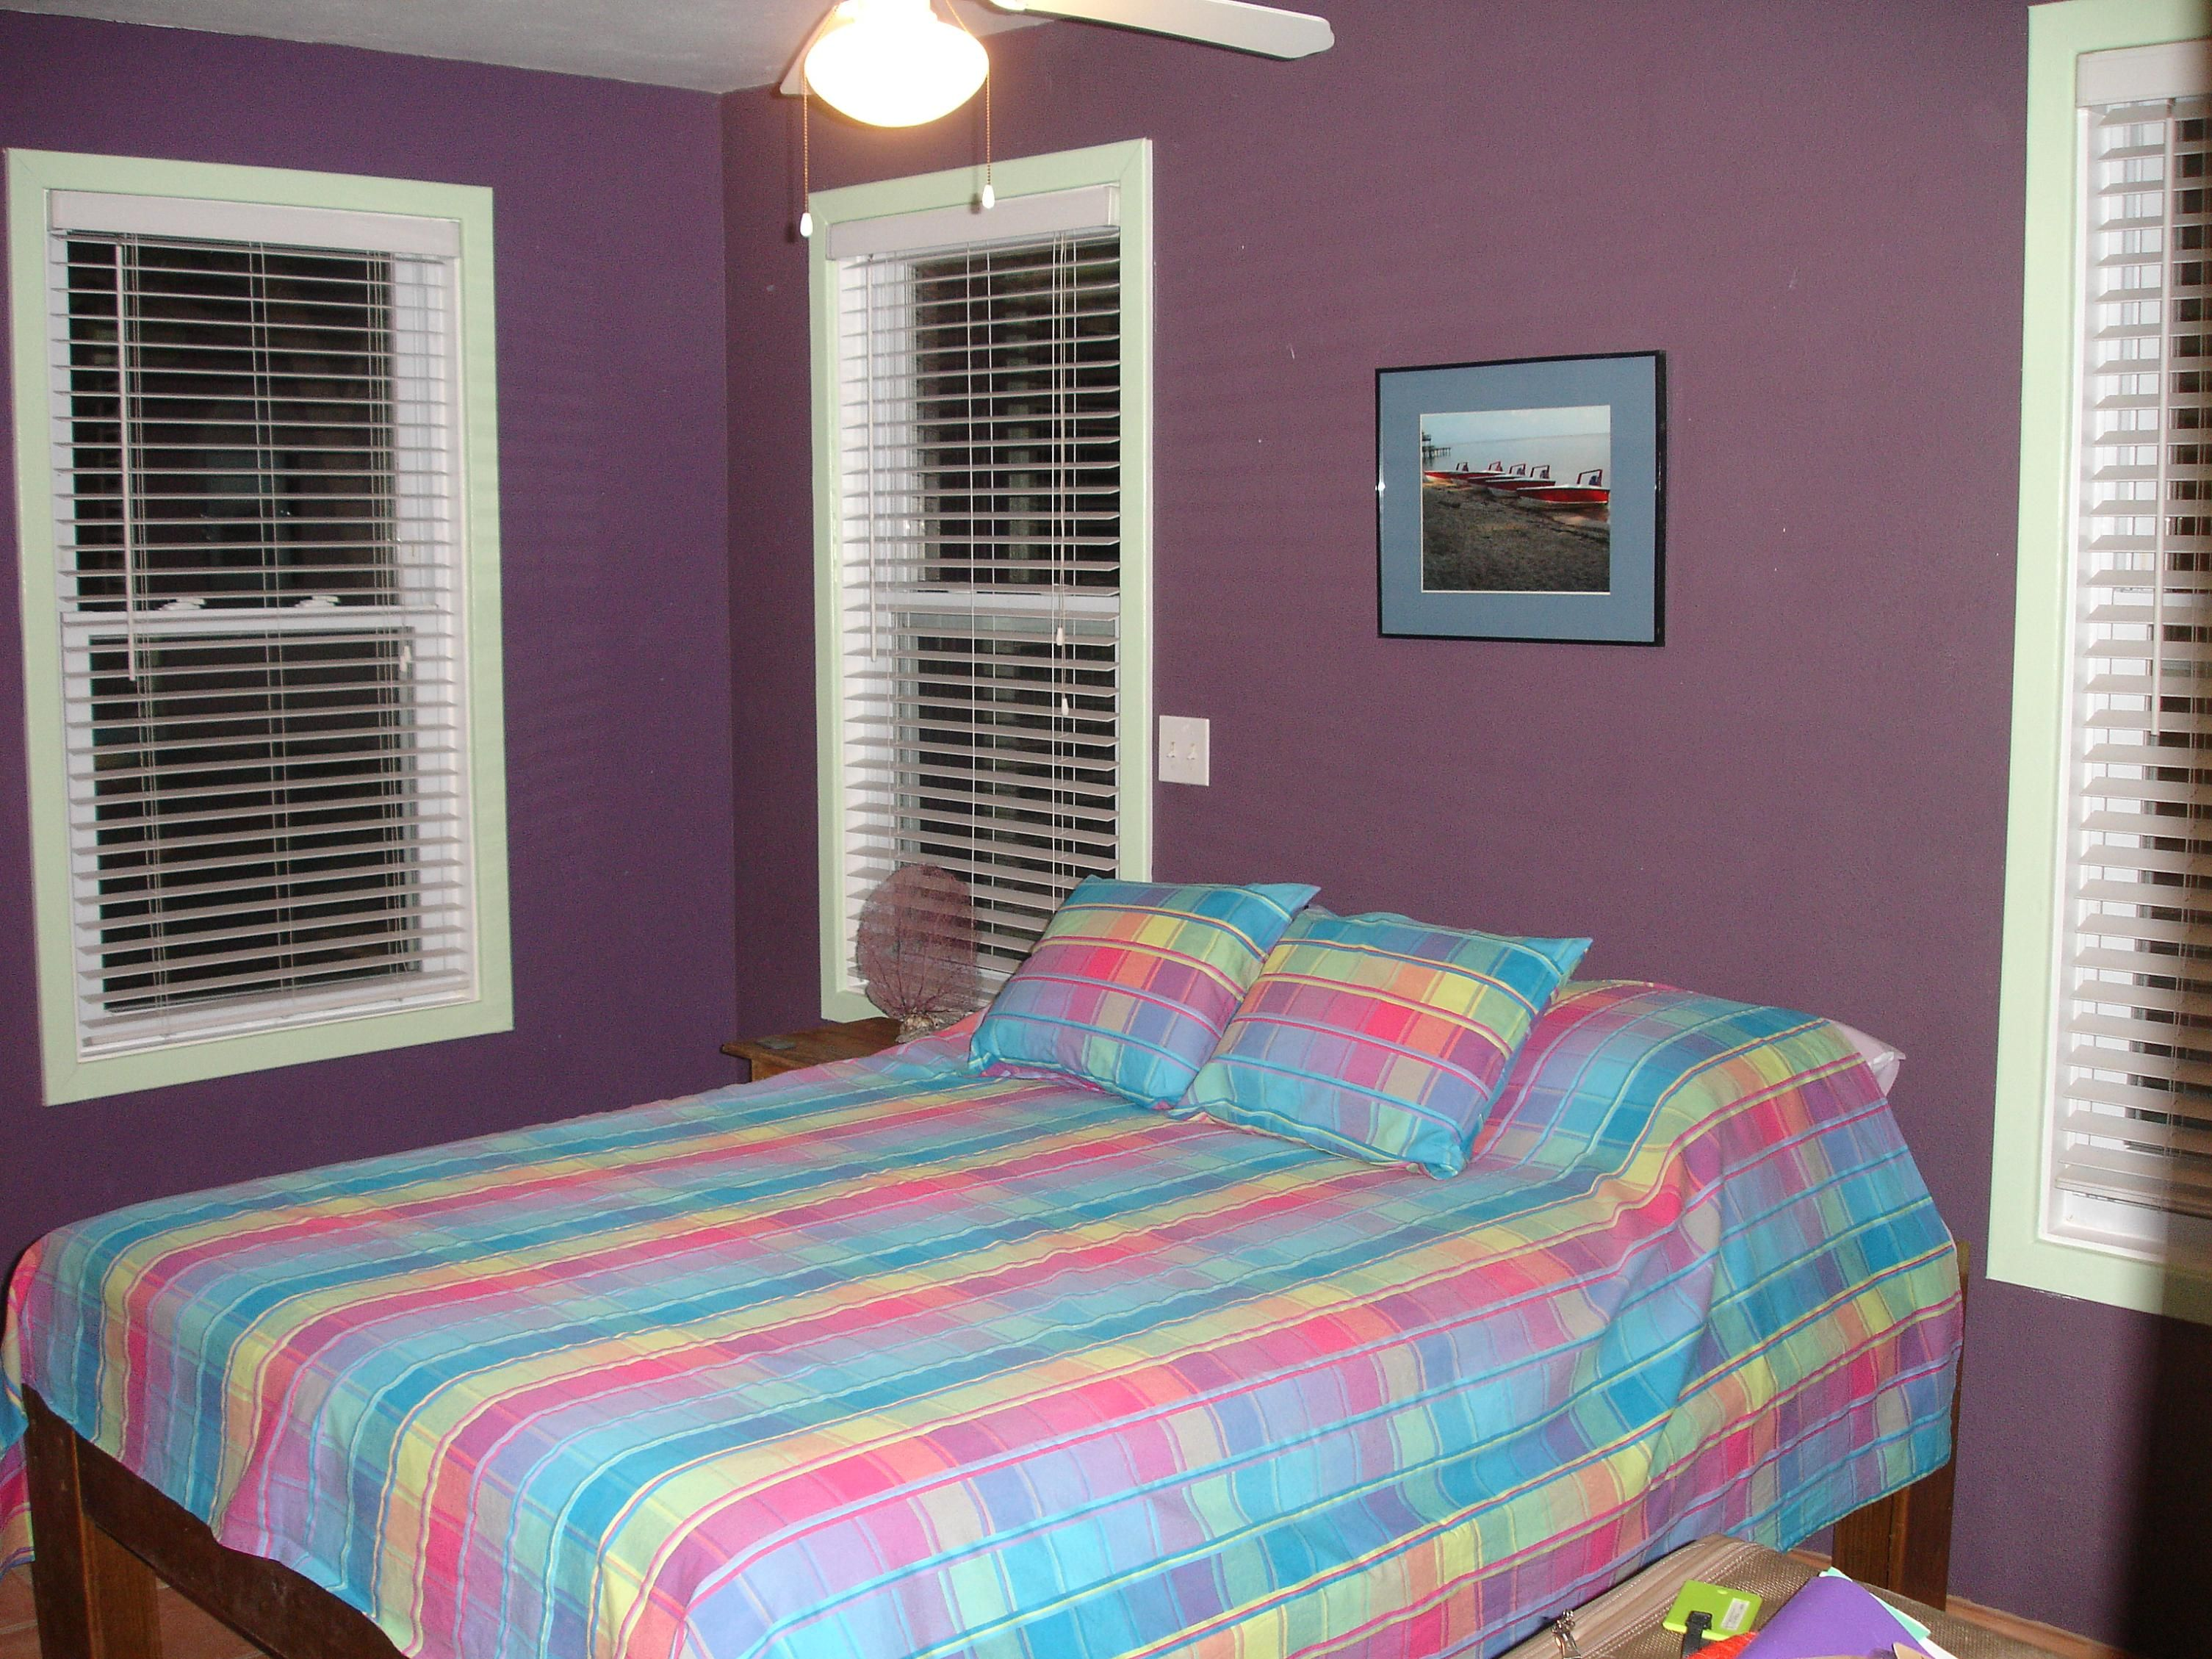 What Is The Best Color For Bedroom With romantis Wall ...